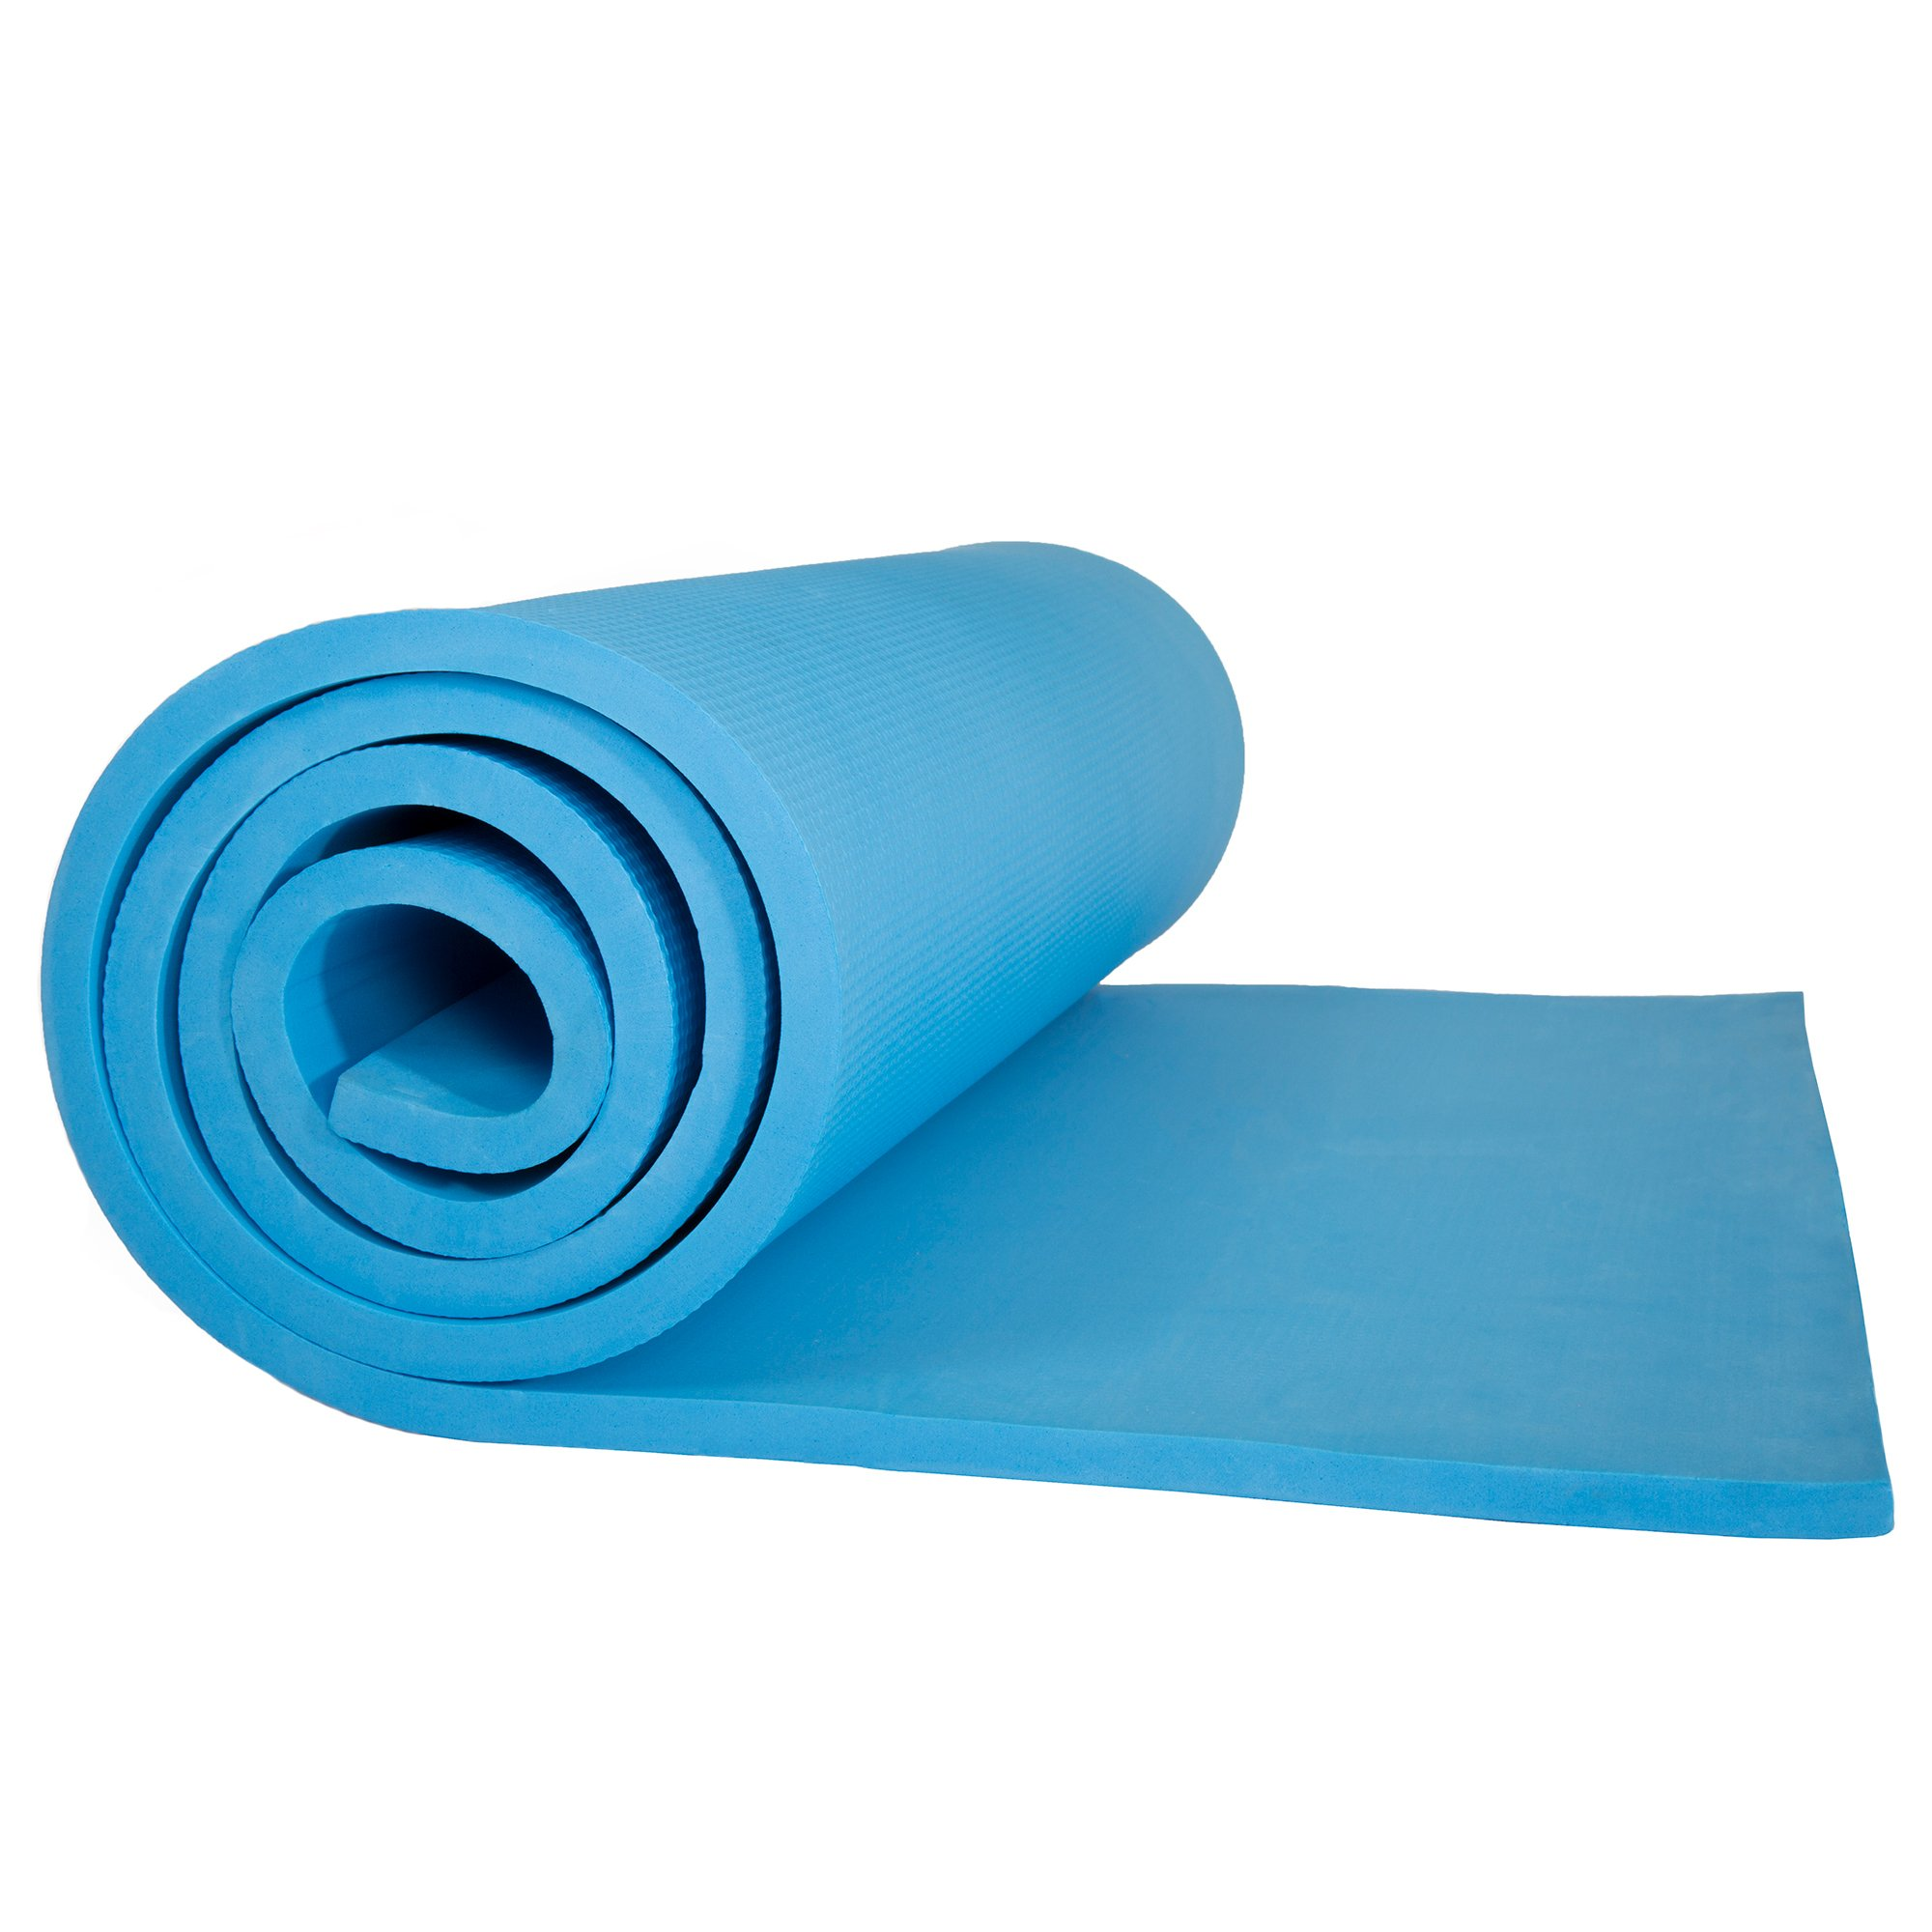 Sleeping Pad, Lightweight Non Slip Foam Mat with Carry Strap by Wakeman Outdoors (Thick Mattress for Camping Hiking Yoga and Backpacking) (Light Blue)